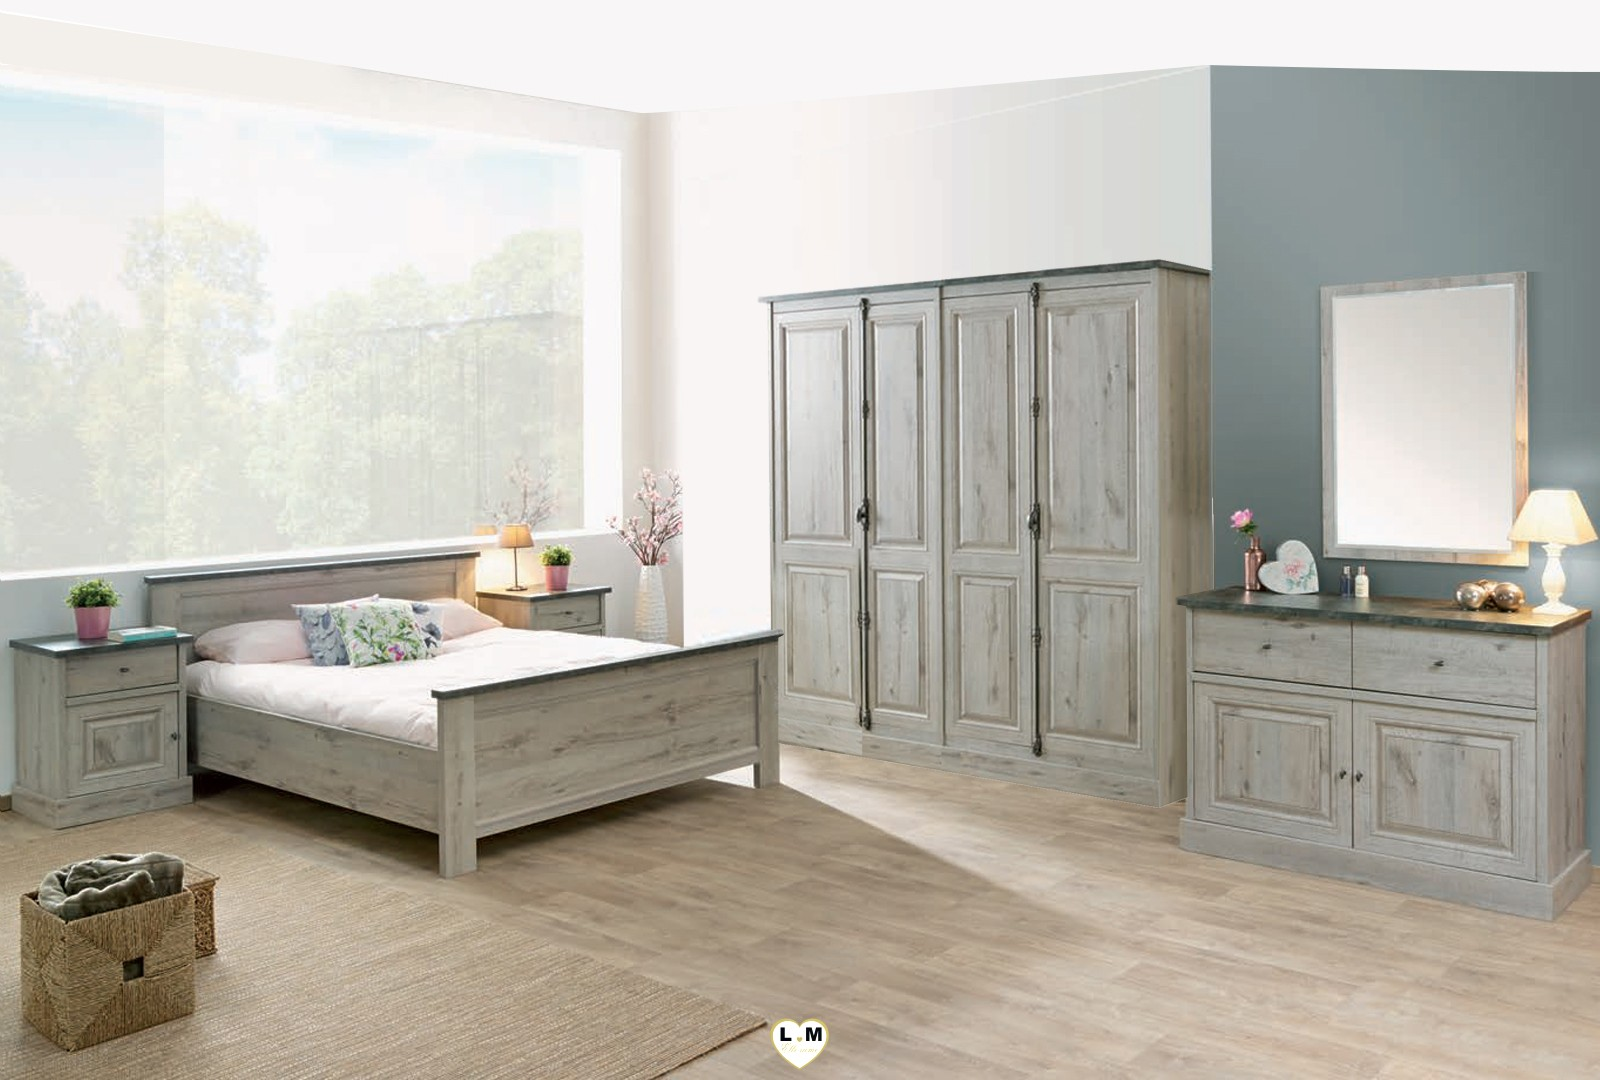 Madleen bois chene excalibur ensemble chambre a coucher for Ensemble armoire commode chambre